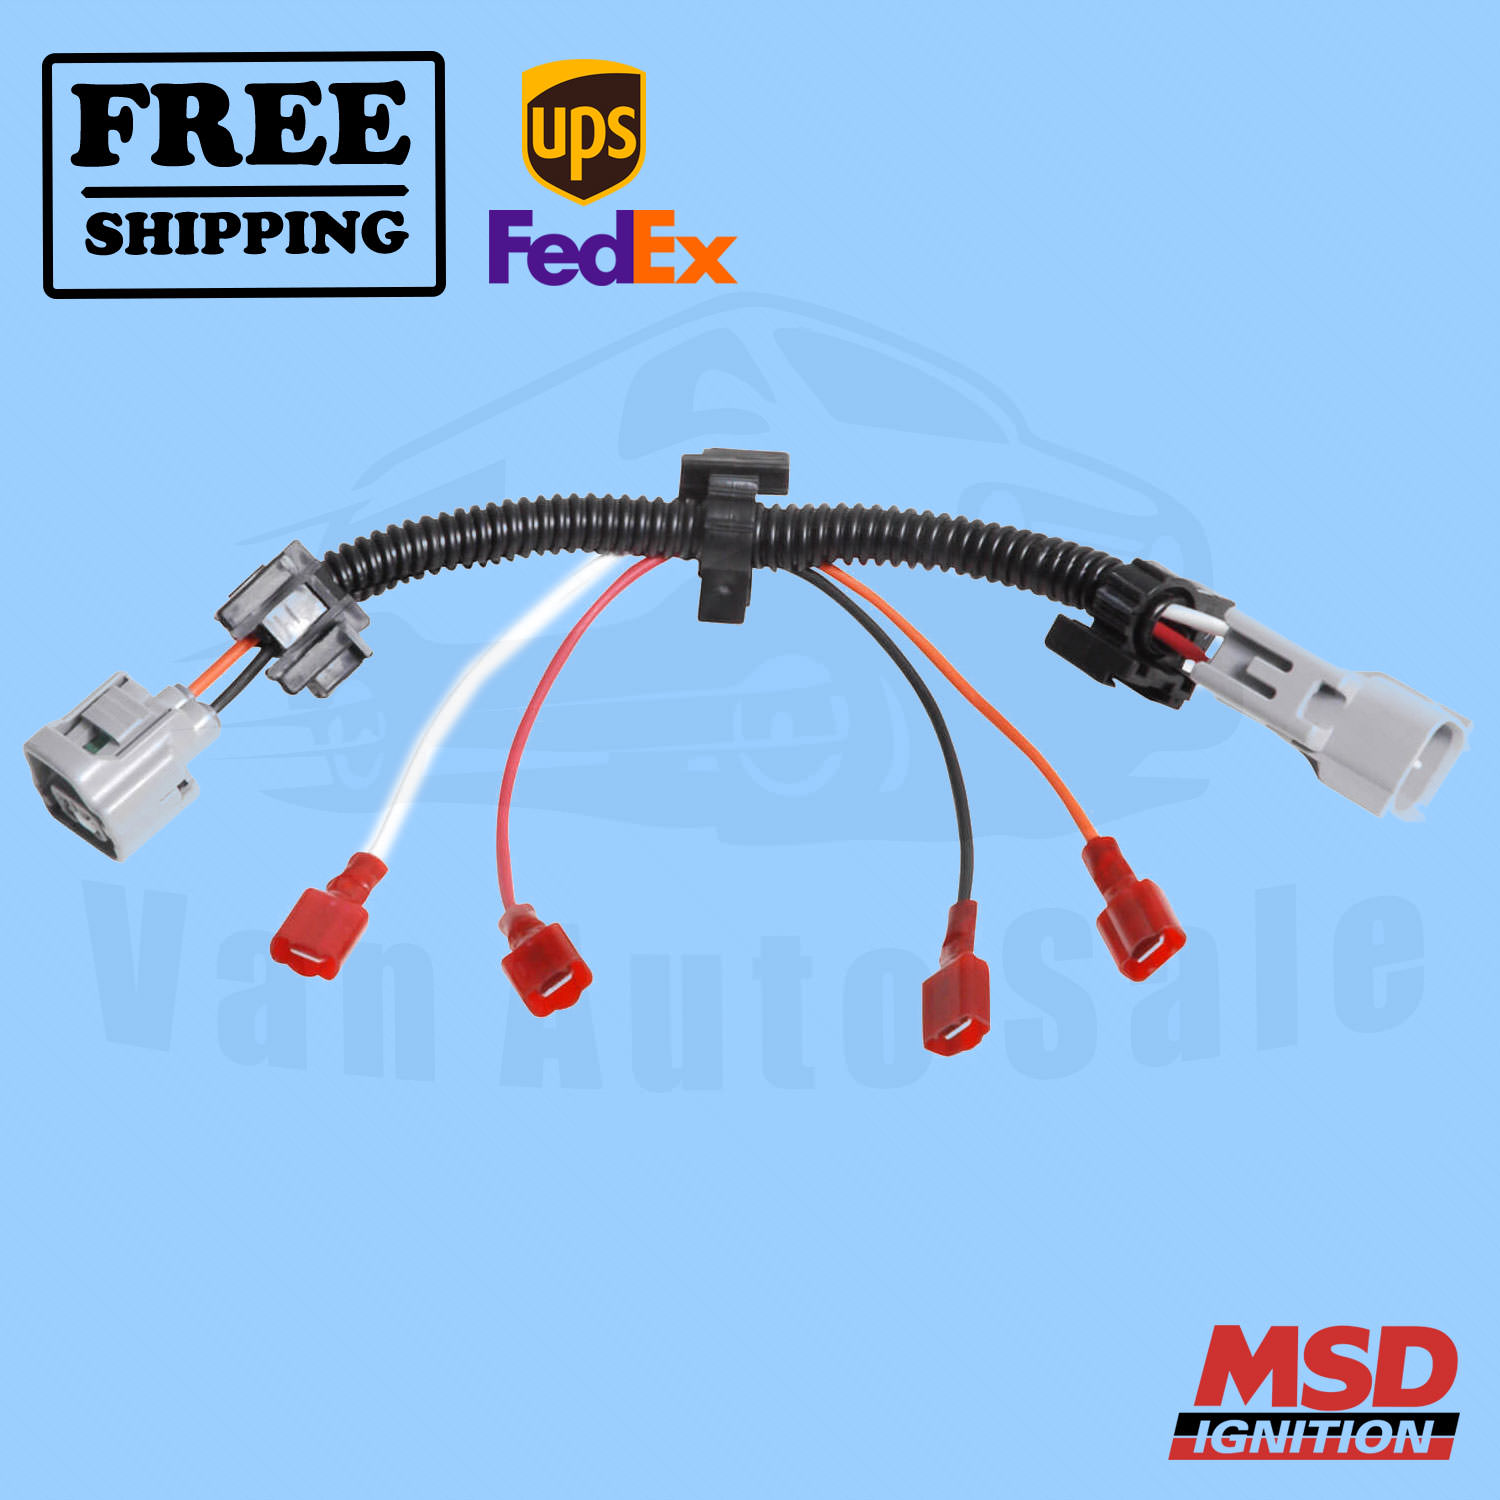 Engine Wiring Harness MSD for Jeep Wrangler 1998-1999 for sale online | eBay | 1998 Jeep Wrangler Wiring Harness |  | eBay